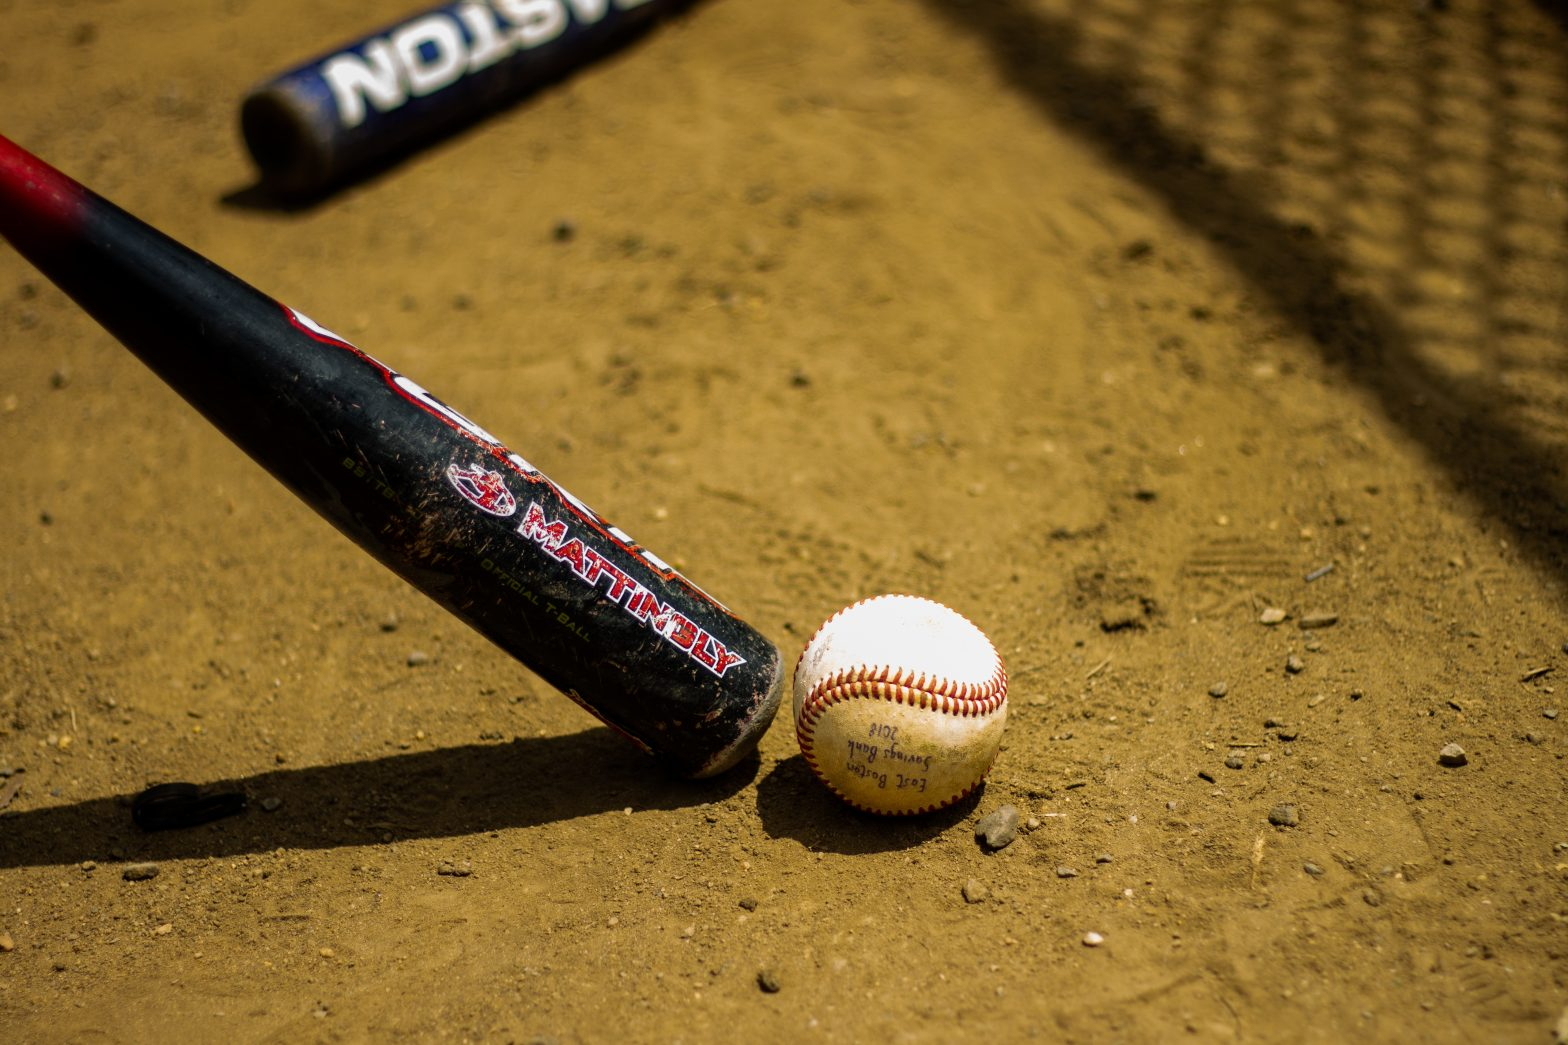 How To Fix A Cracked Baseball Bat Repair Your Beloved Bat Lastbase